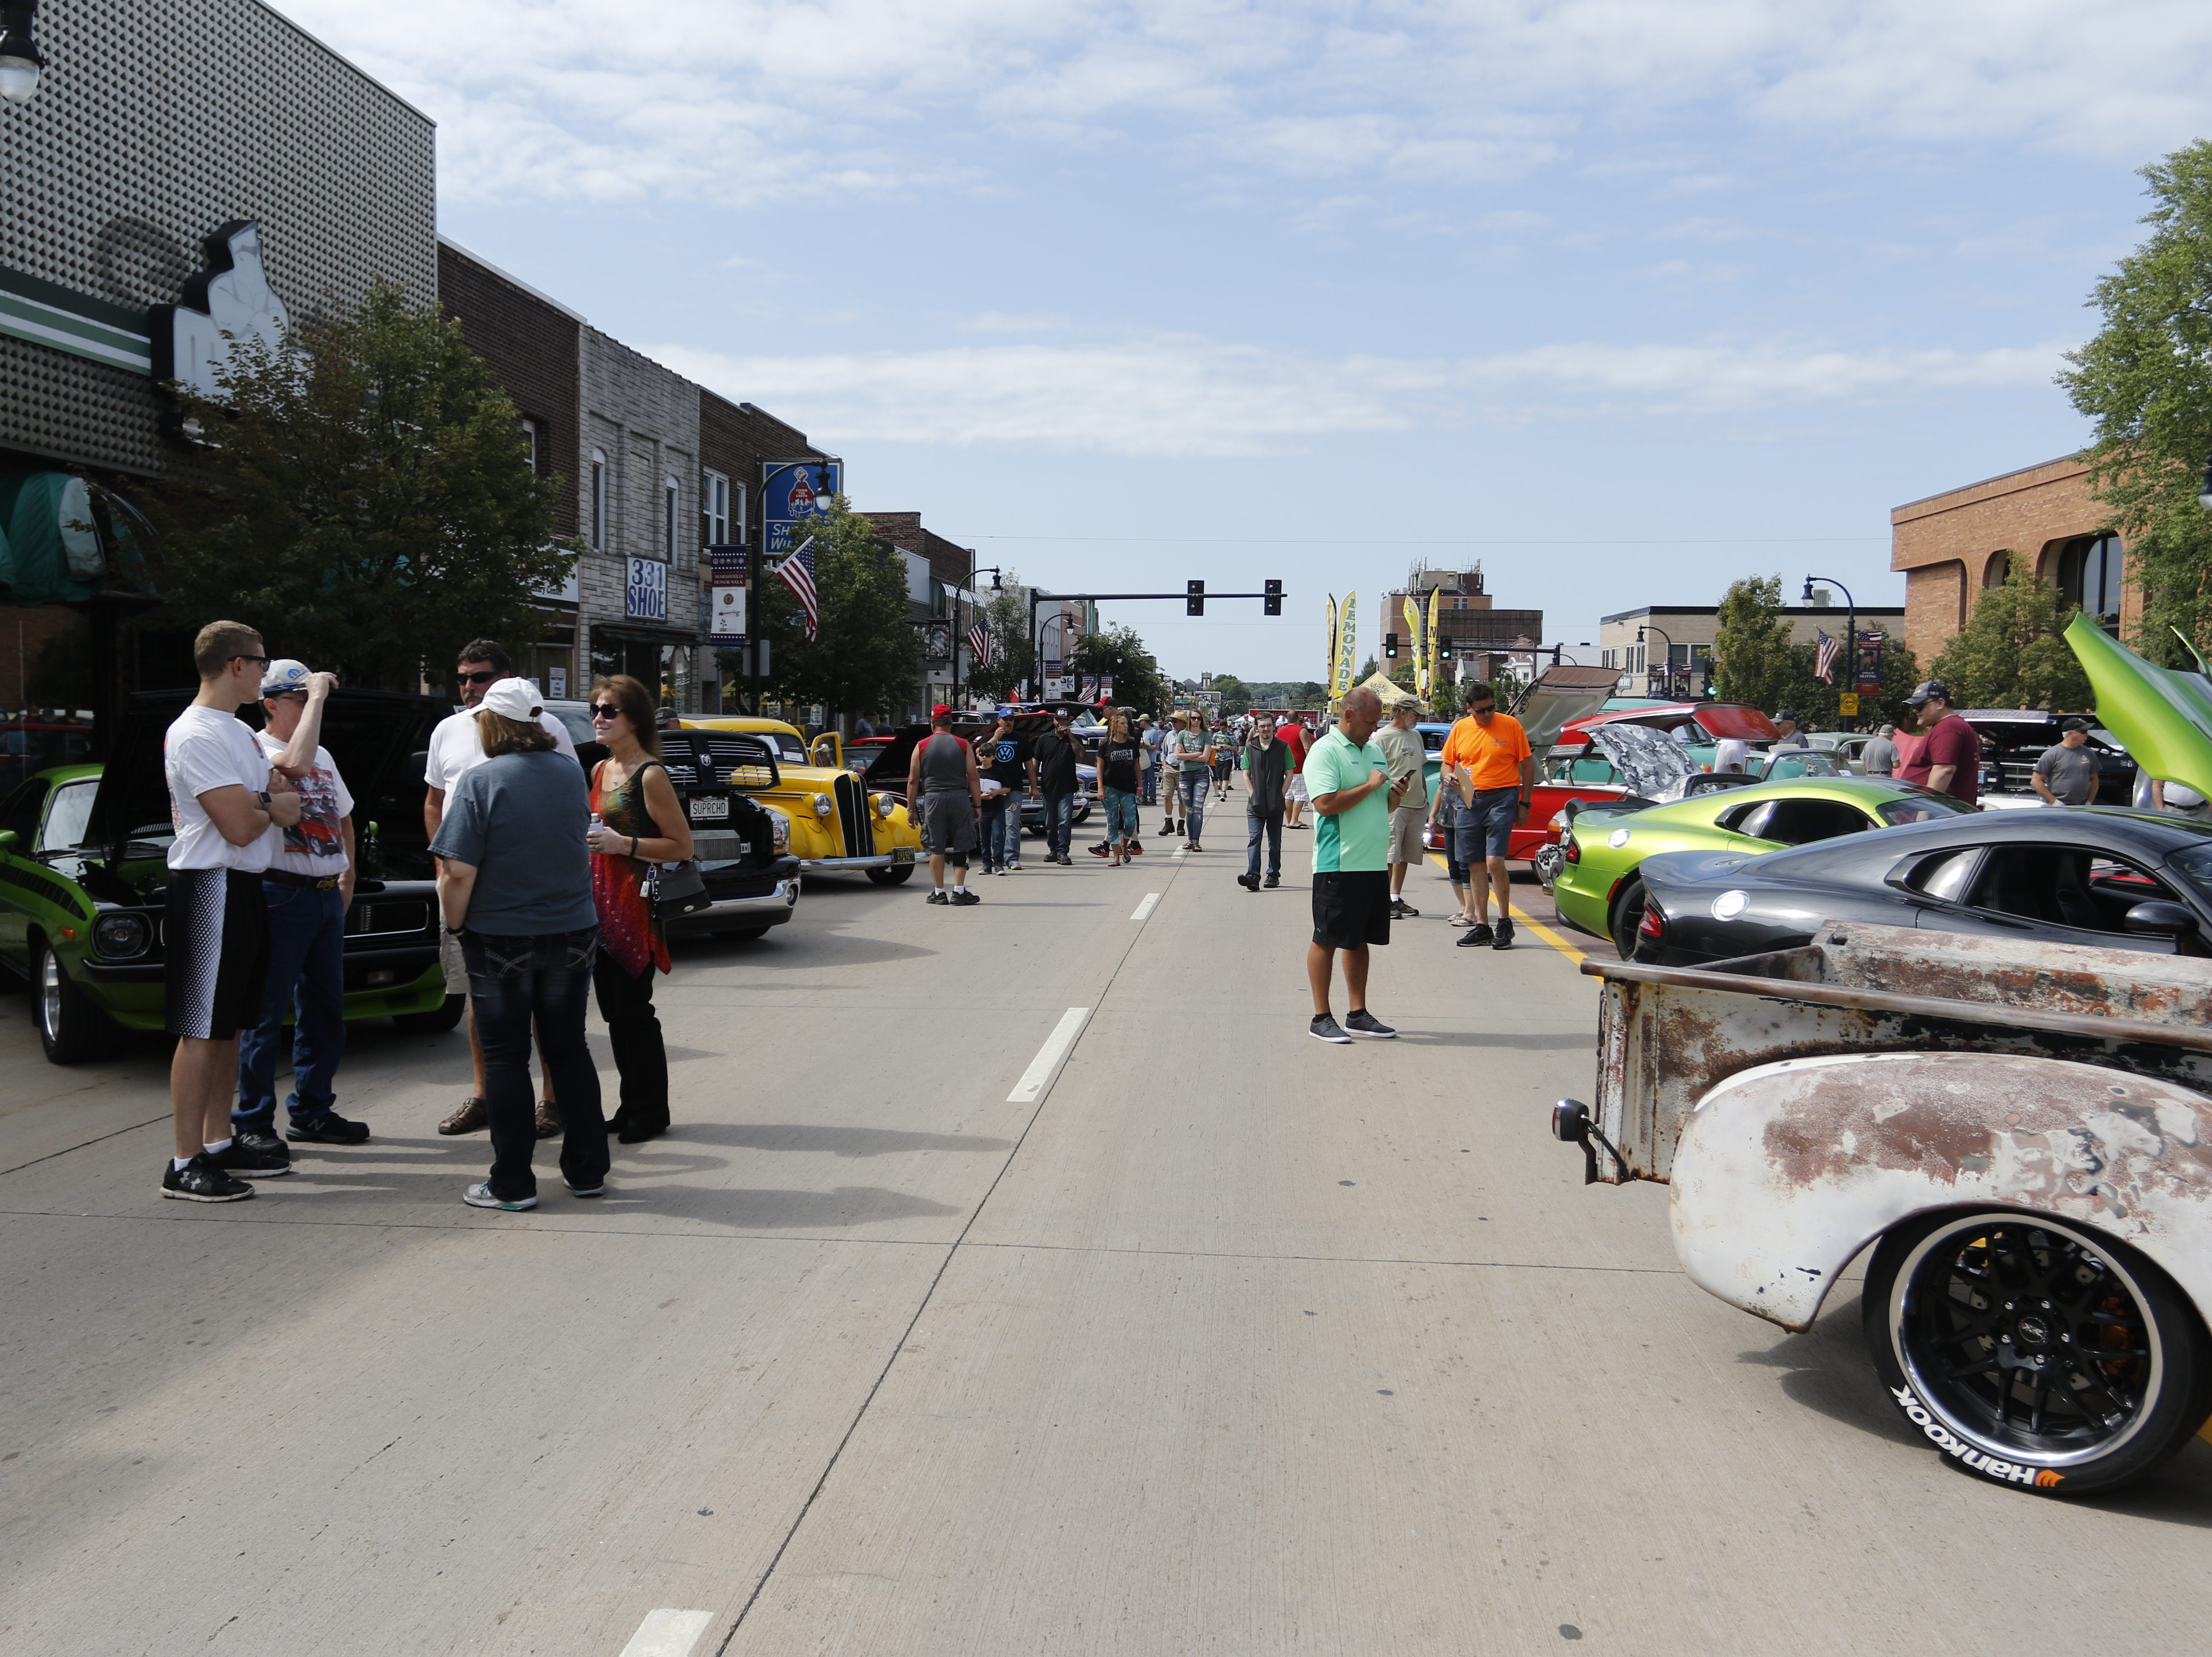 Central Avenue is filled with cars and people during the car show at Hub City Days in downtown Marshfield Saturday, July 28, 2018.